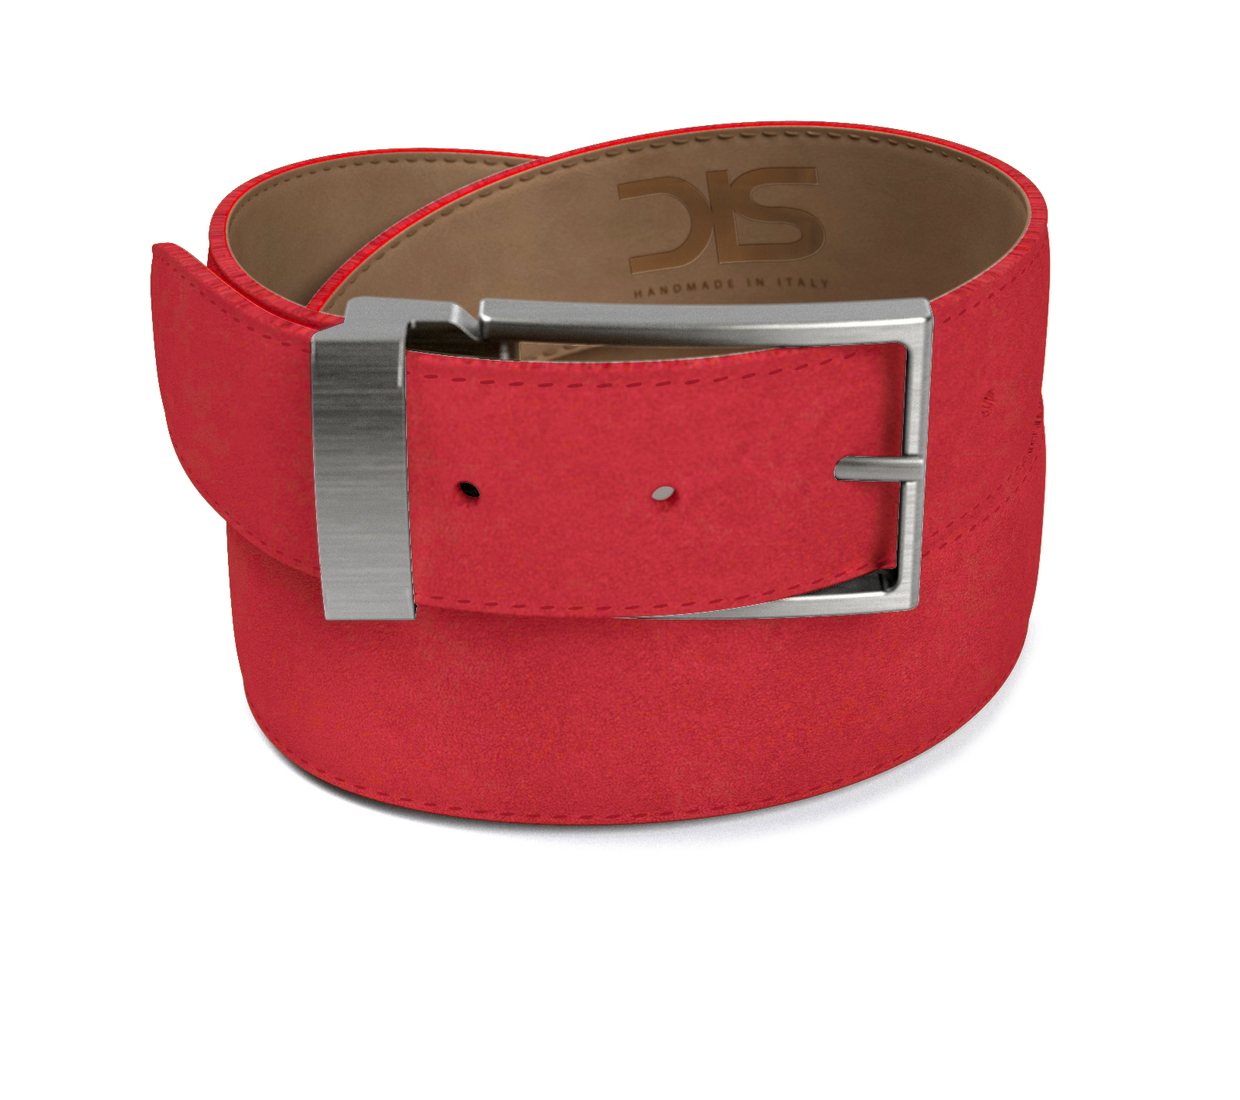 Red suede leather belt with opaque buckle